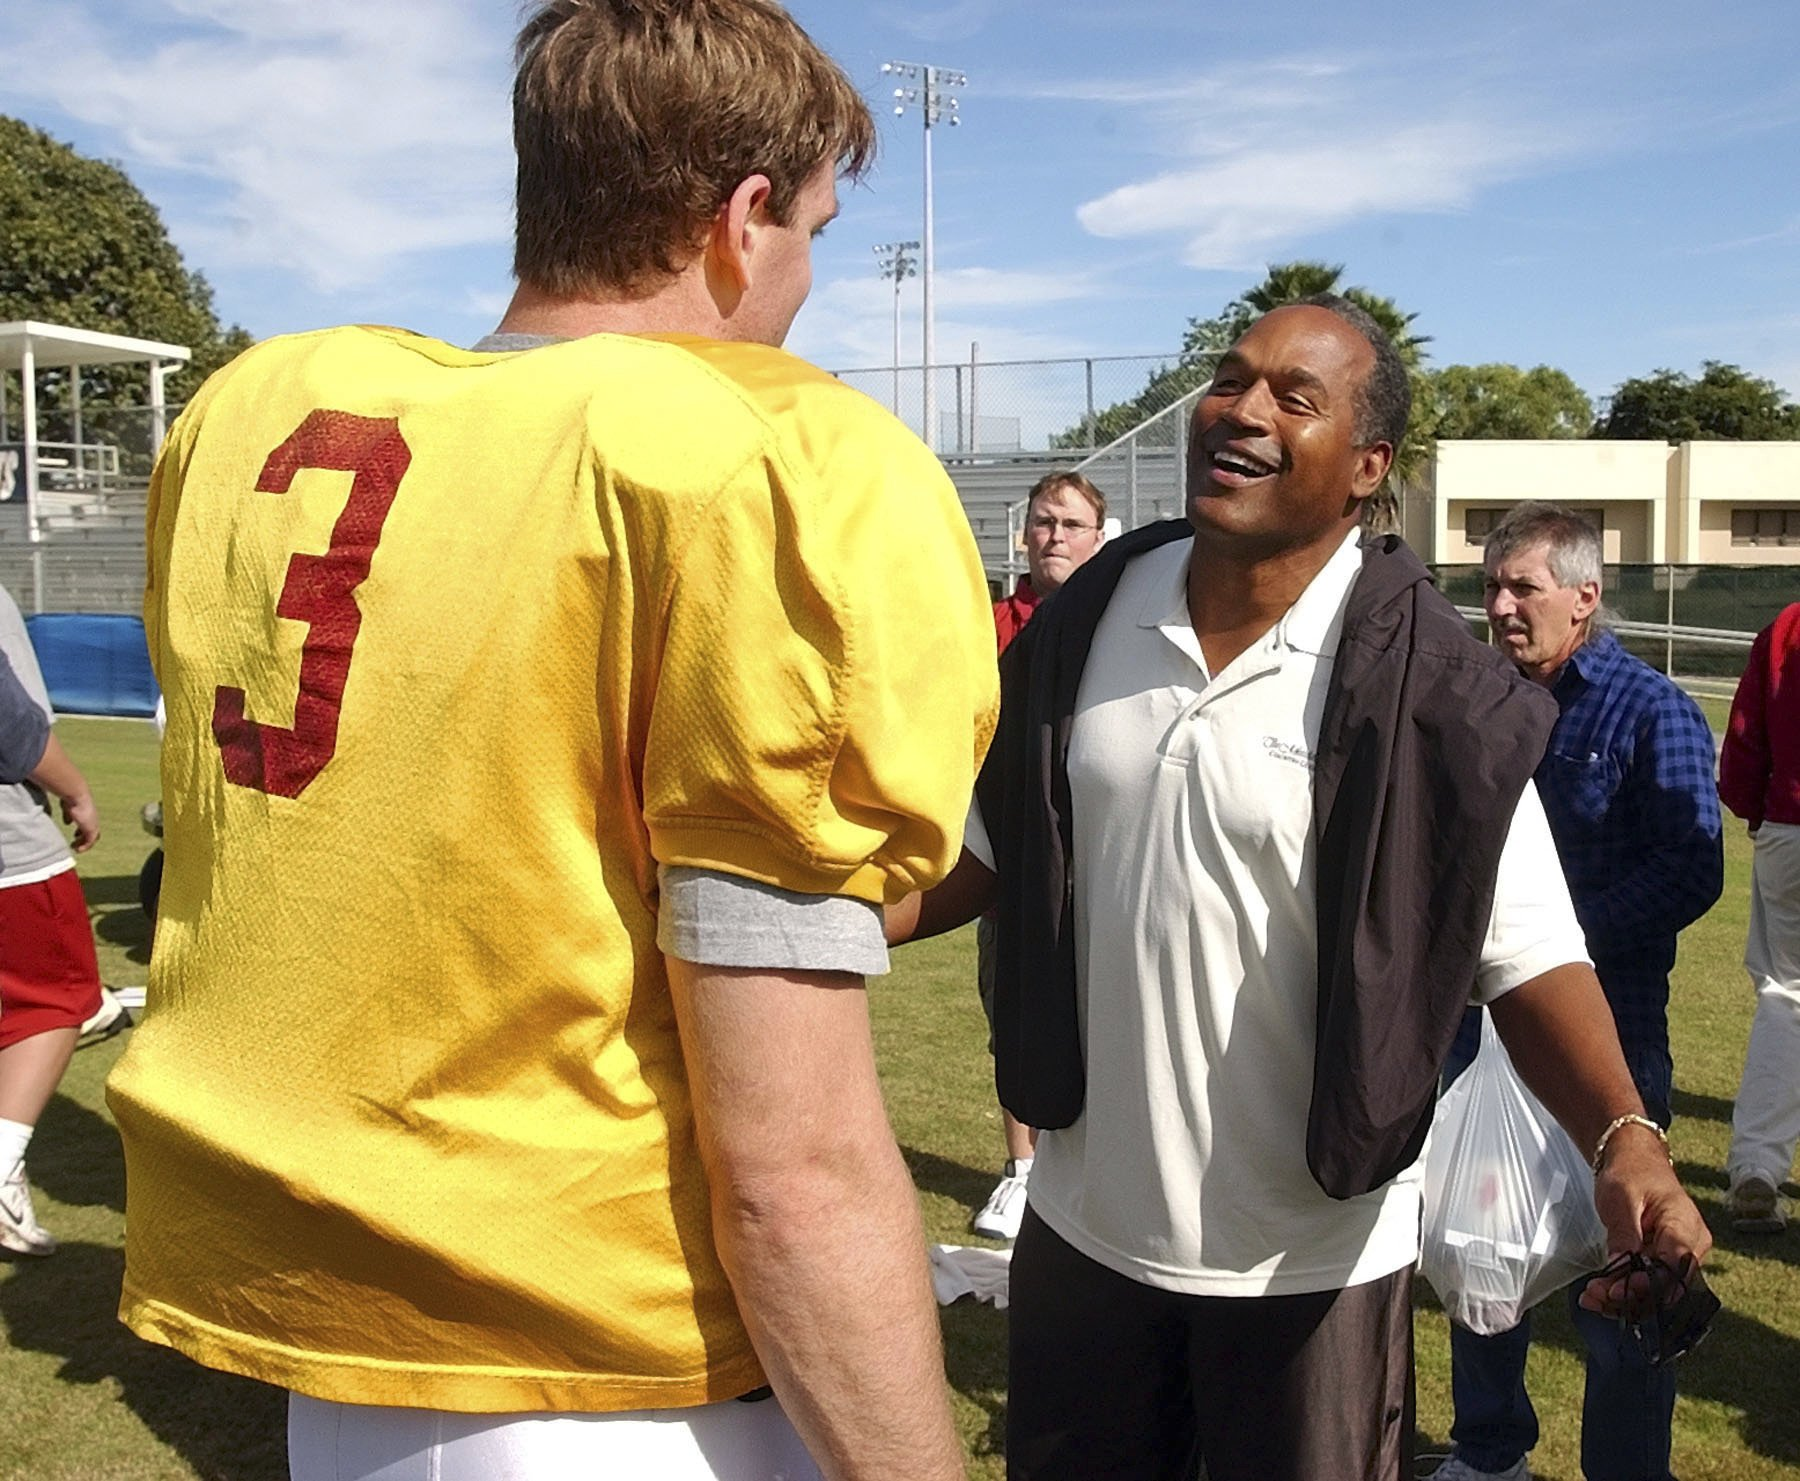 O.J. Simpson won't be invited to USC practices, functions